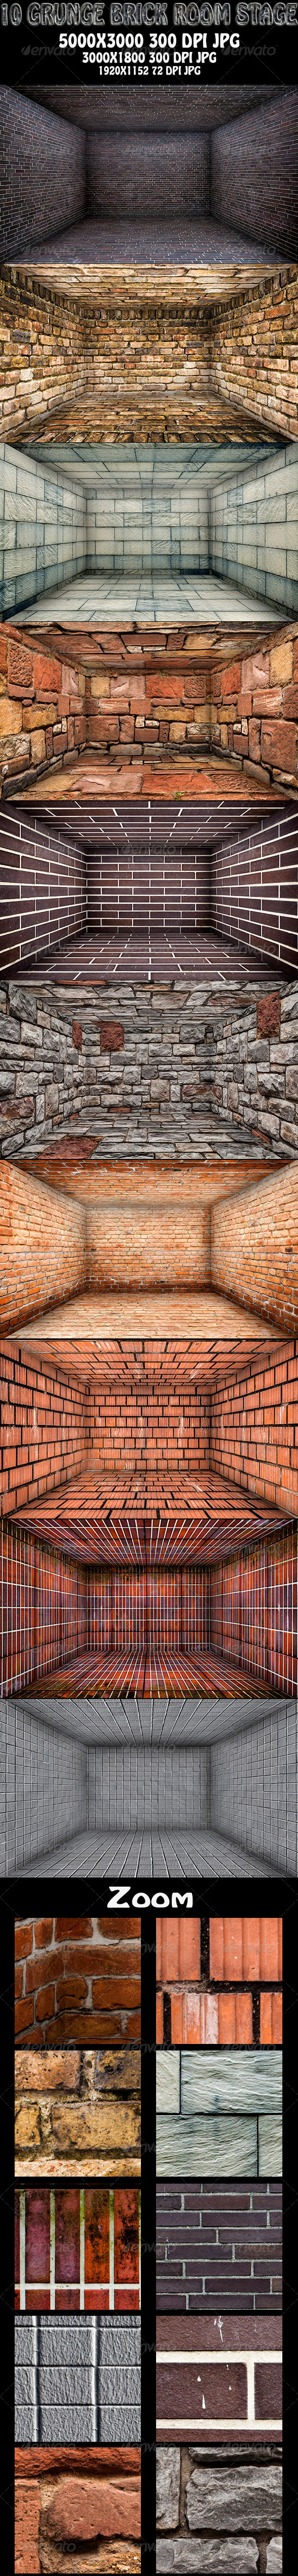 10 Grunge Brick Room - Stage - Urban Backgrounds